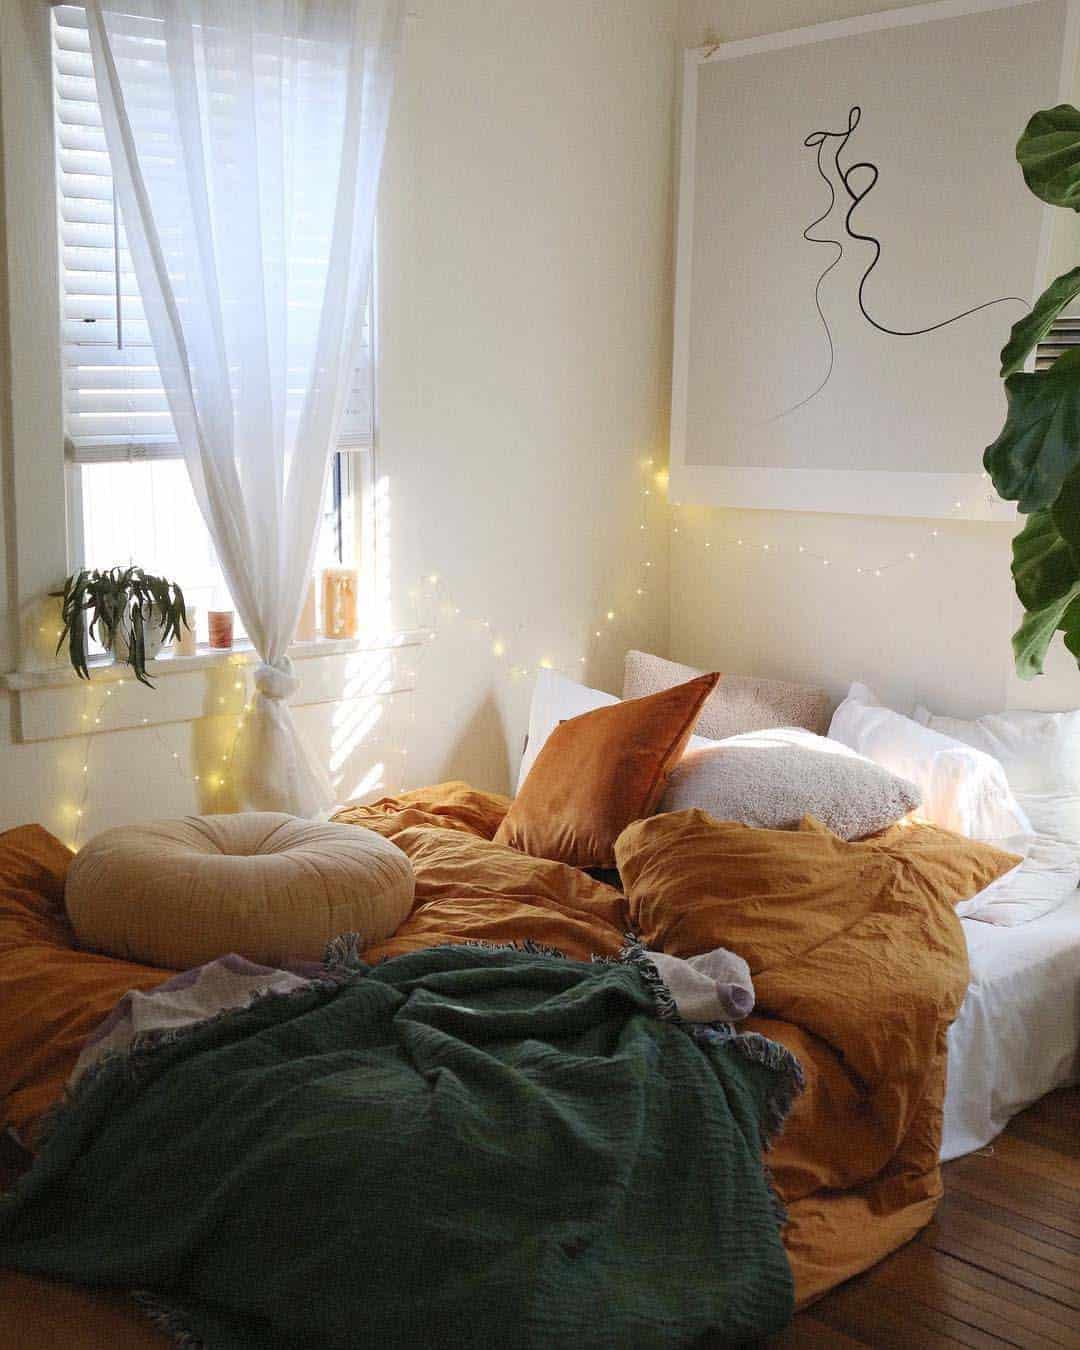 Bedroom-Decorating-Ideas-For-Autumn-19-1-Kindesign